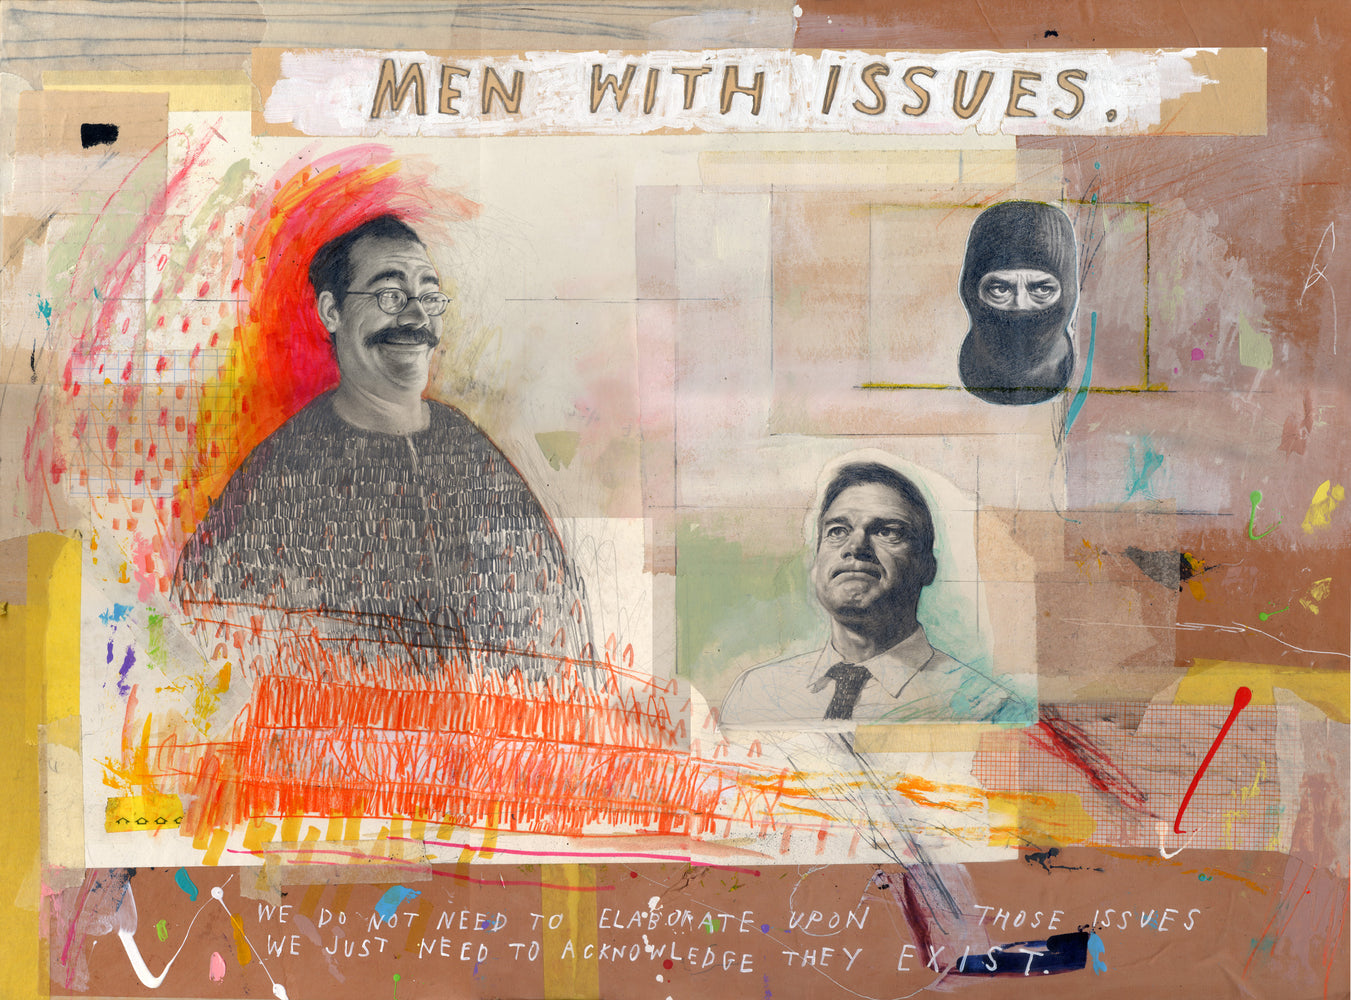 Men With Issues